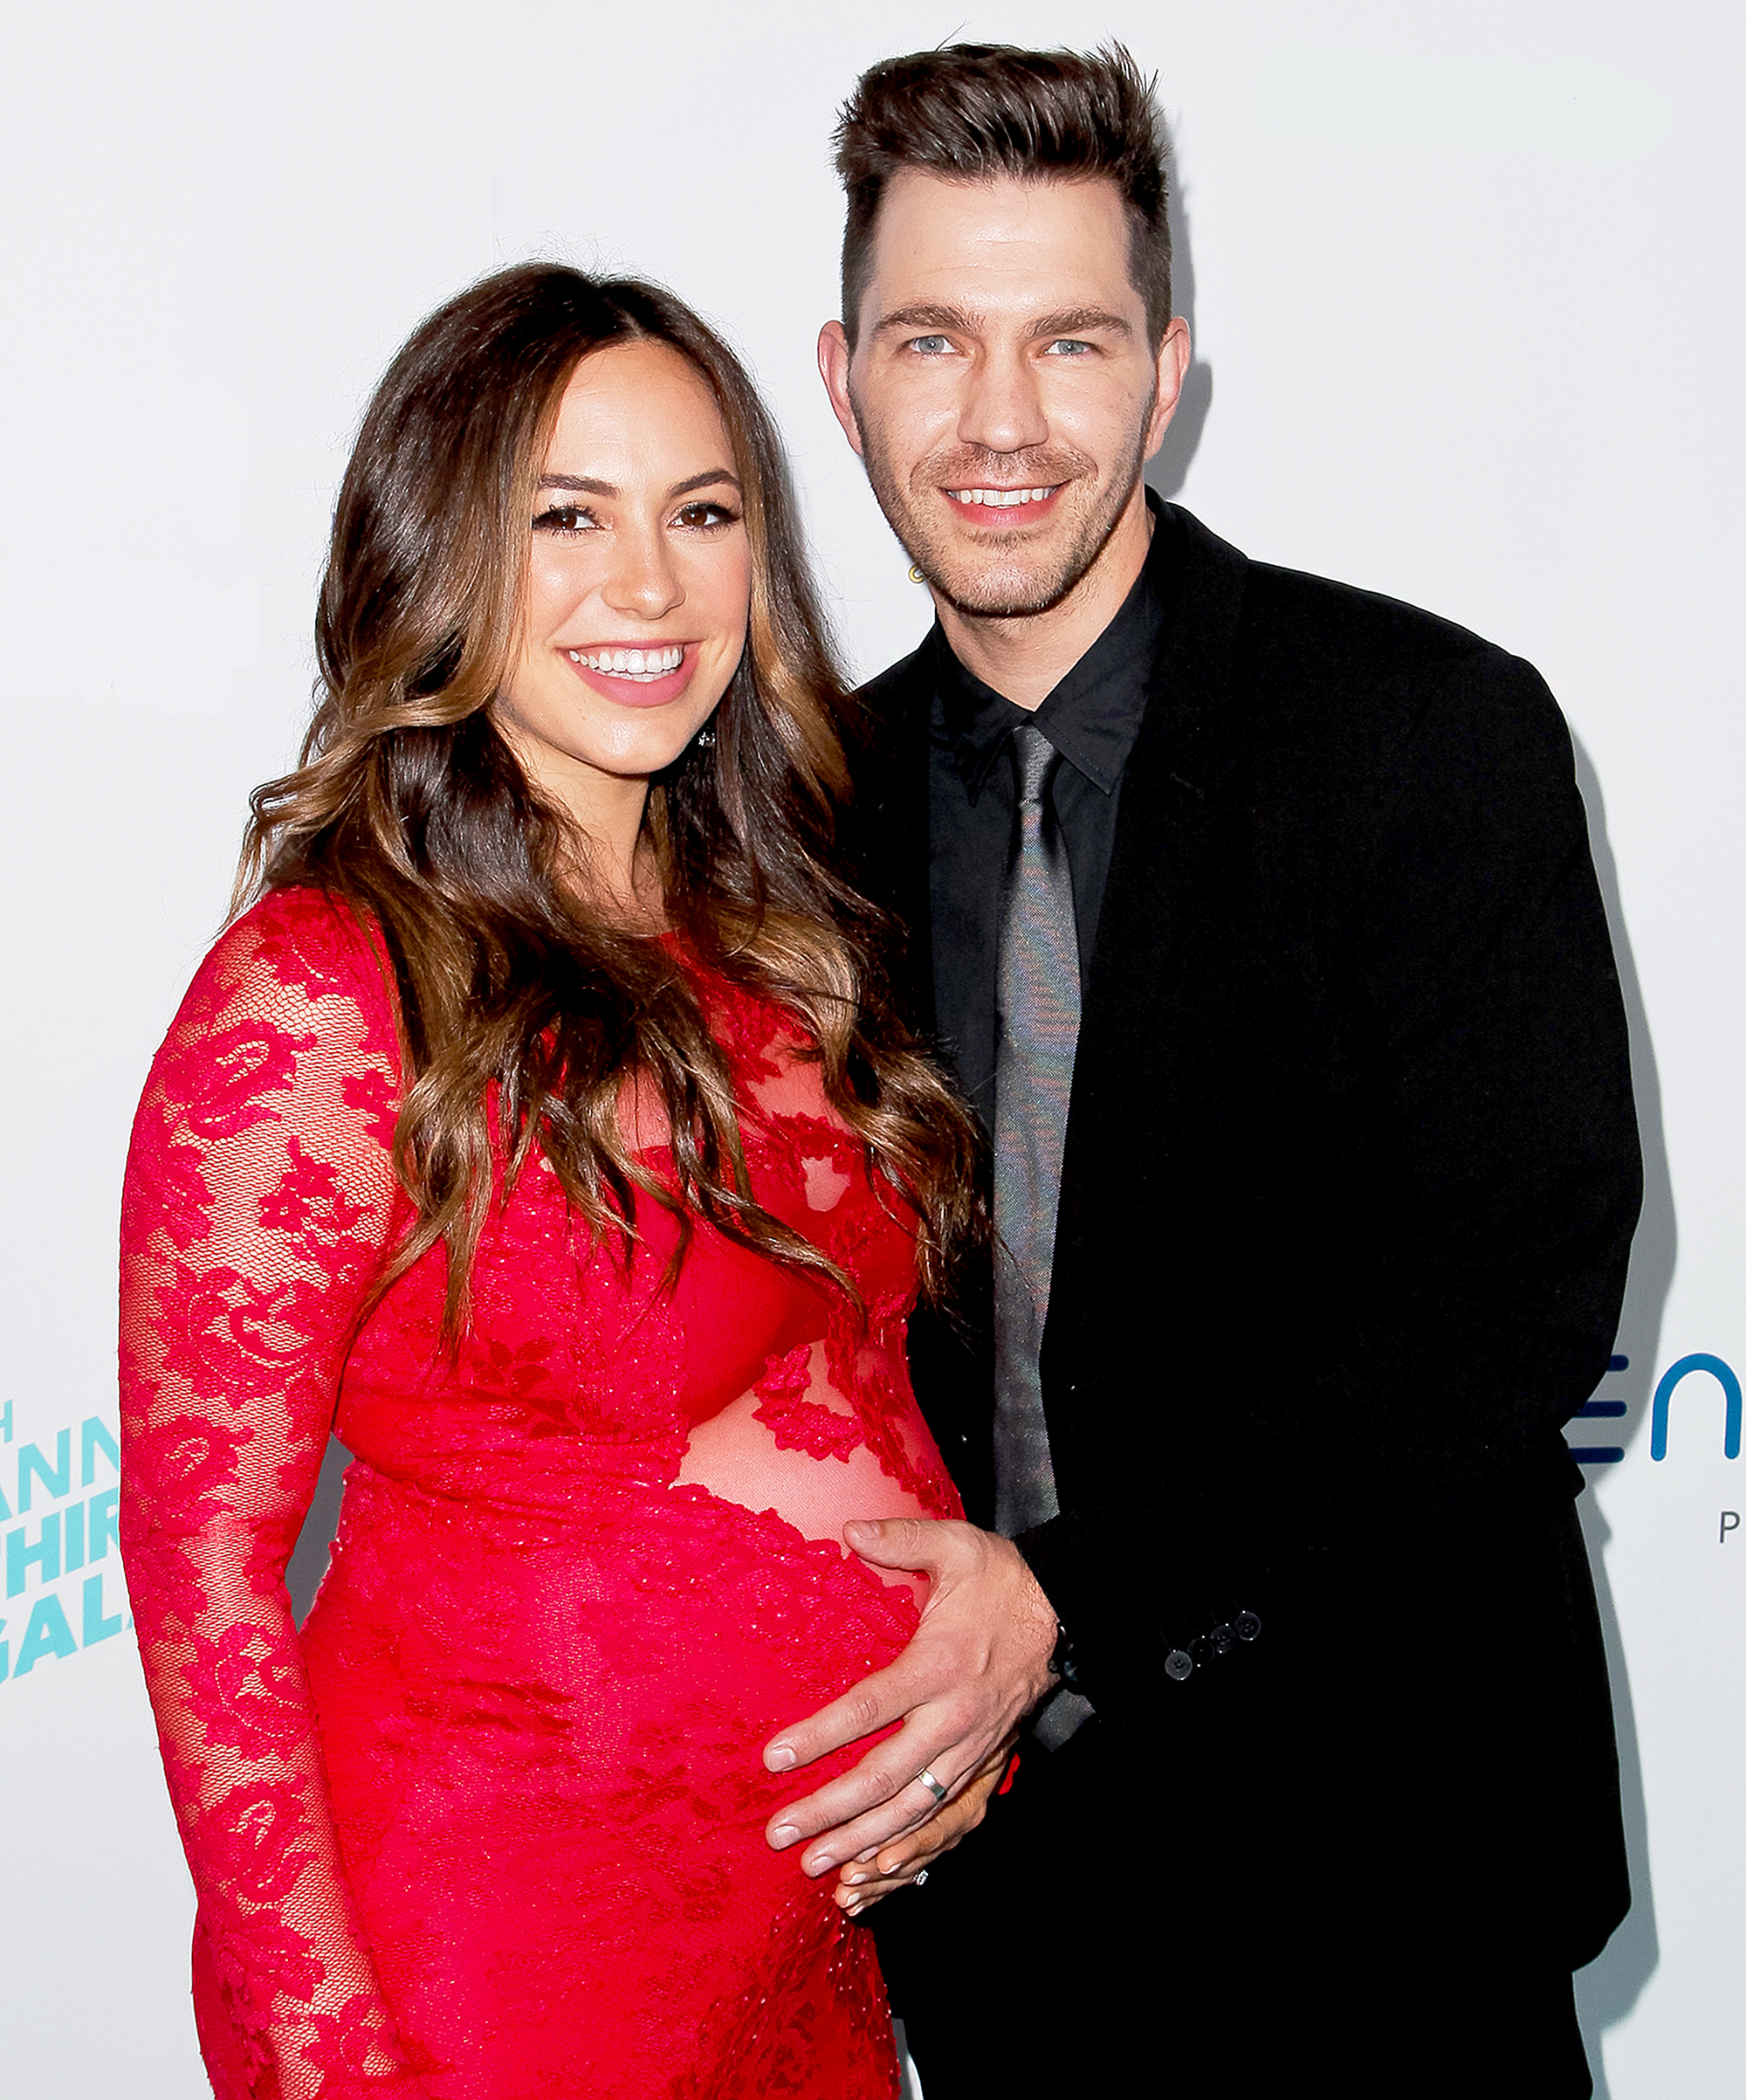 Andy Grammer and Aijia